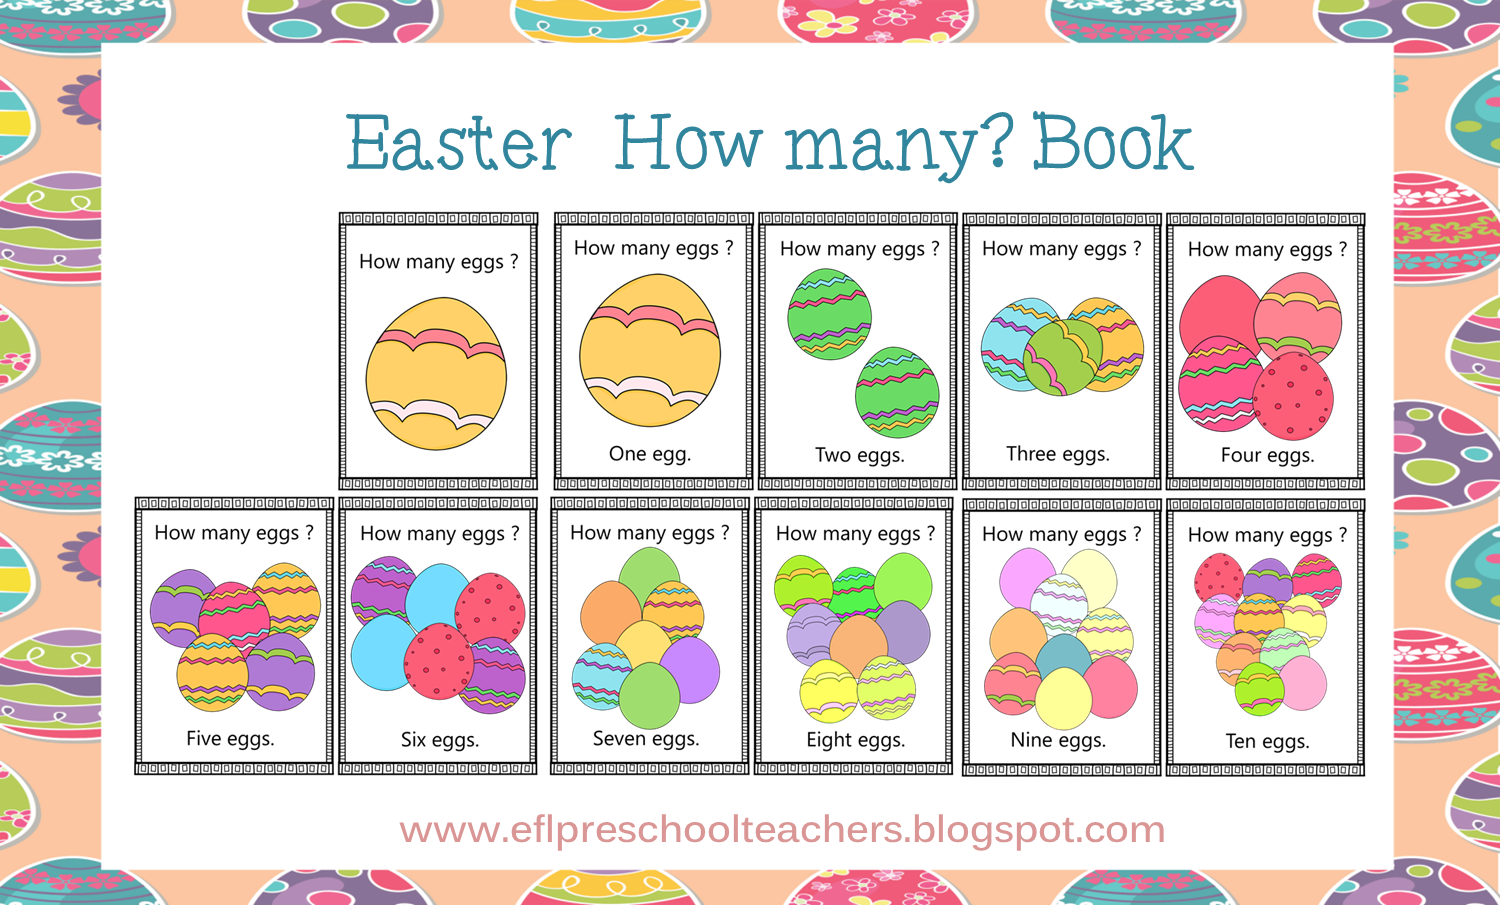 Esl Efl Preschool Teachers Easter For Preschool Ell